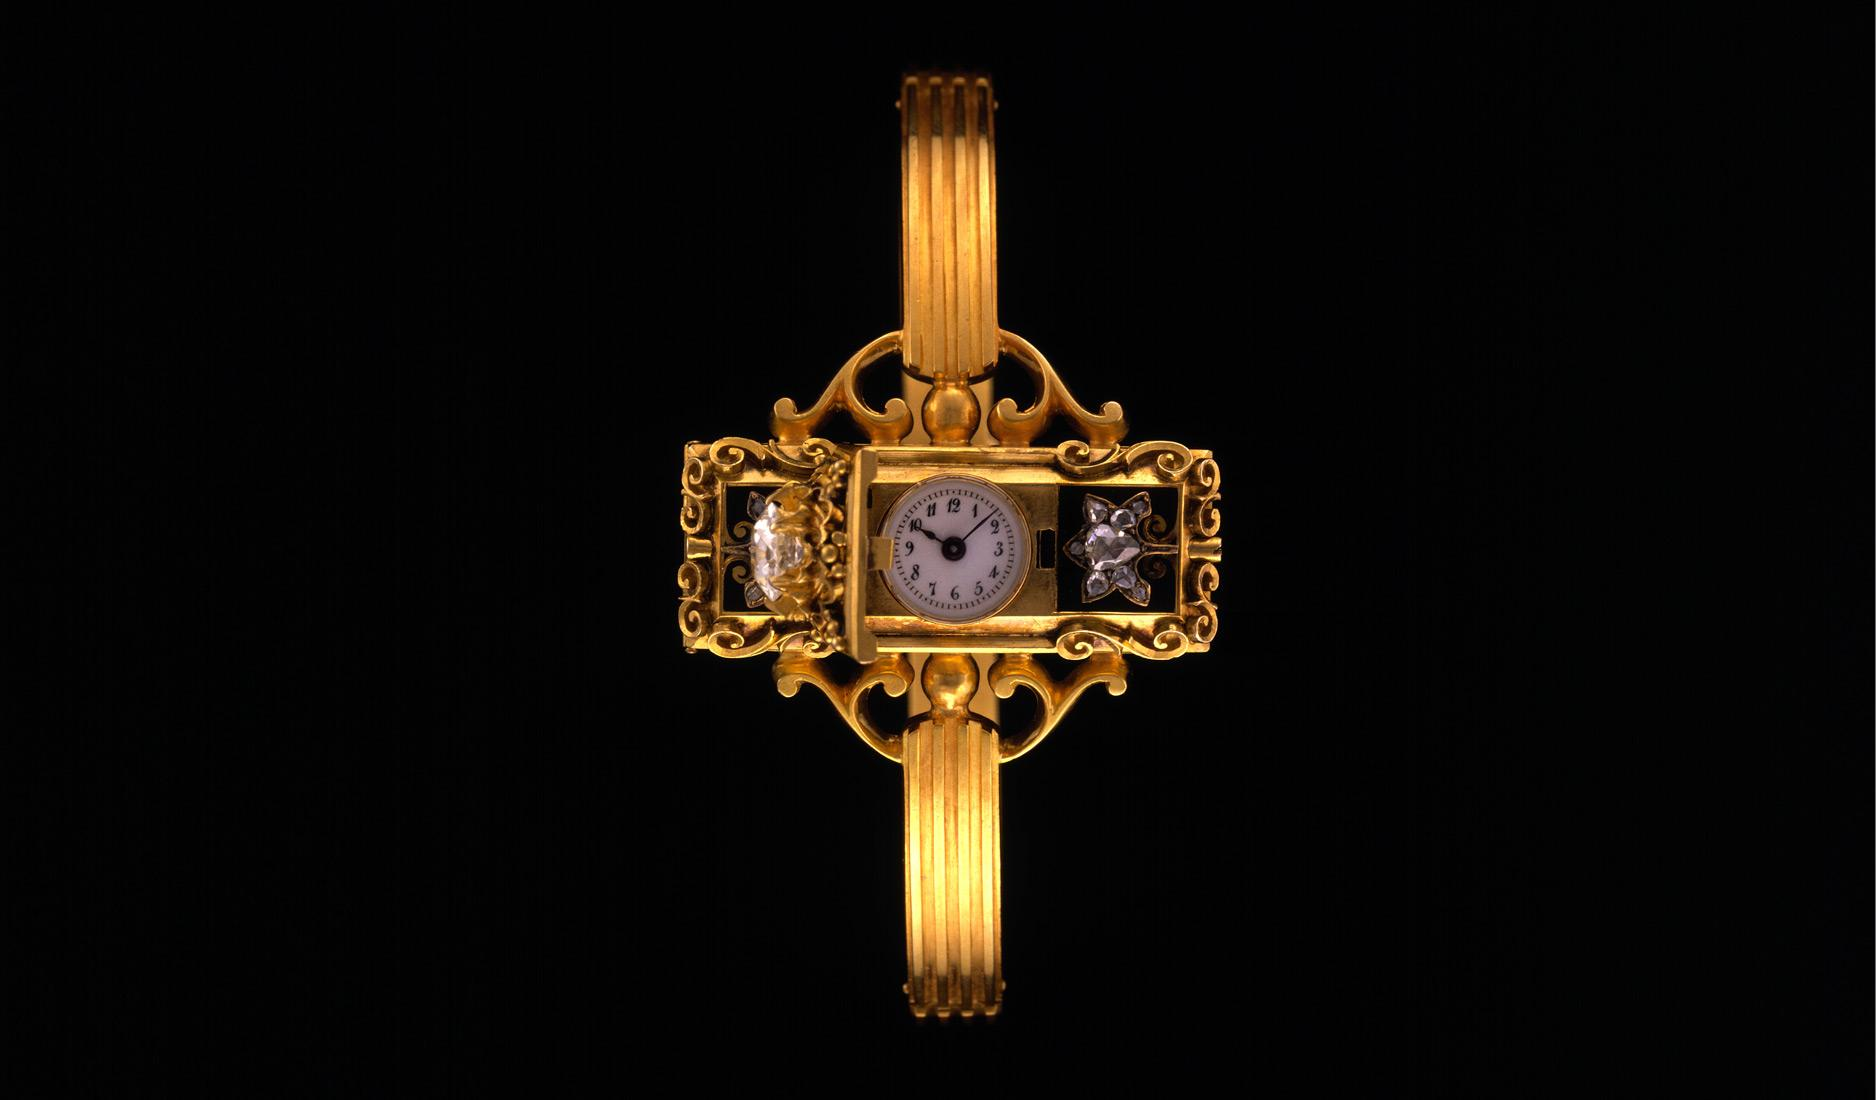 The first wristwatch built by Patek Philippe in 1868